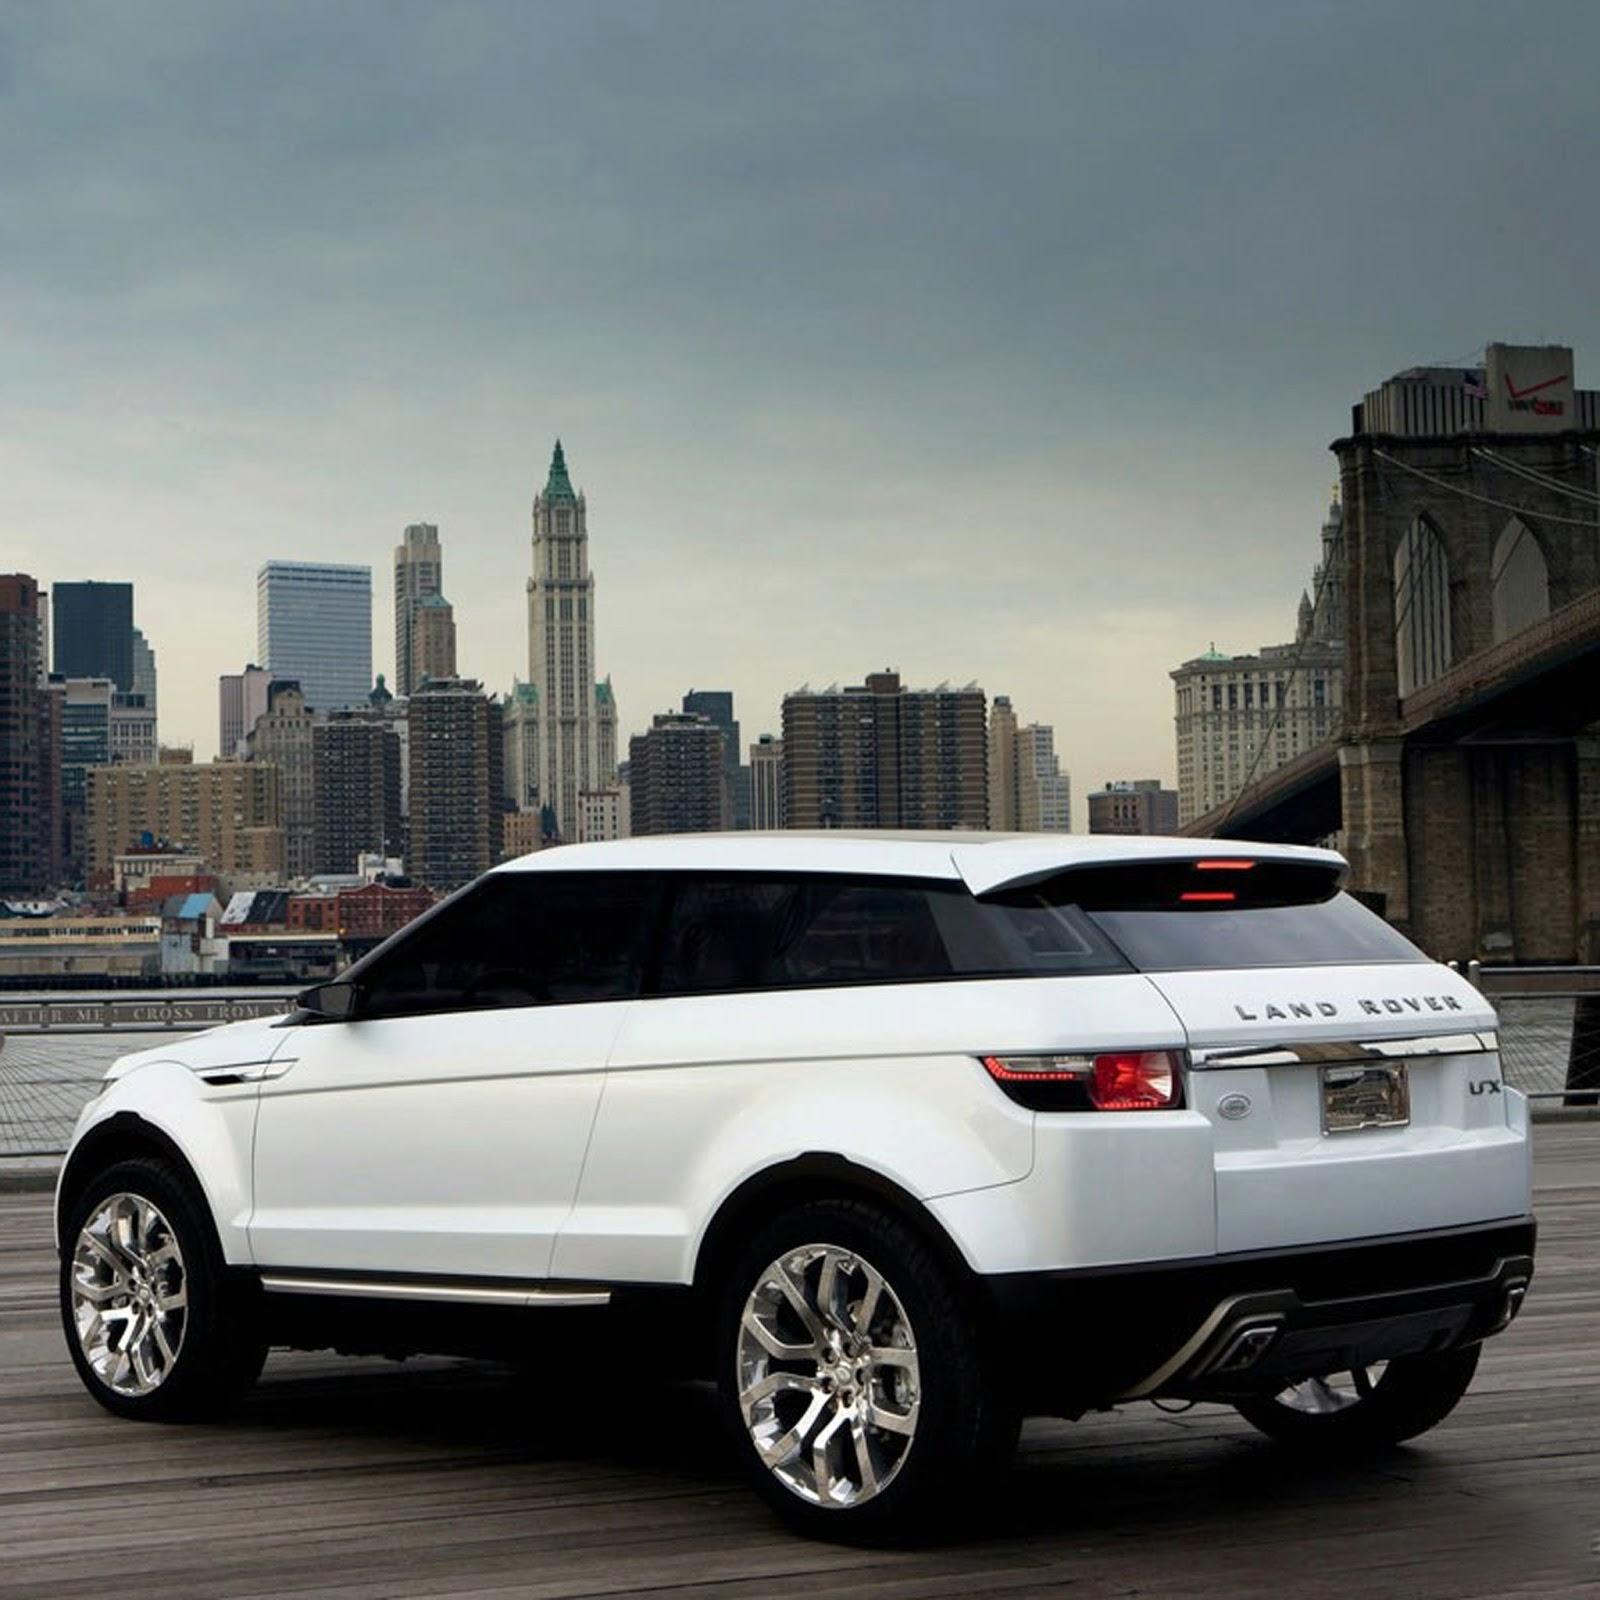 land rover lrx concept wallpapers - Land Rover LRX Concept Car and Driver